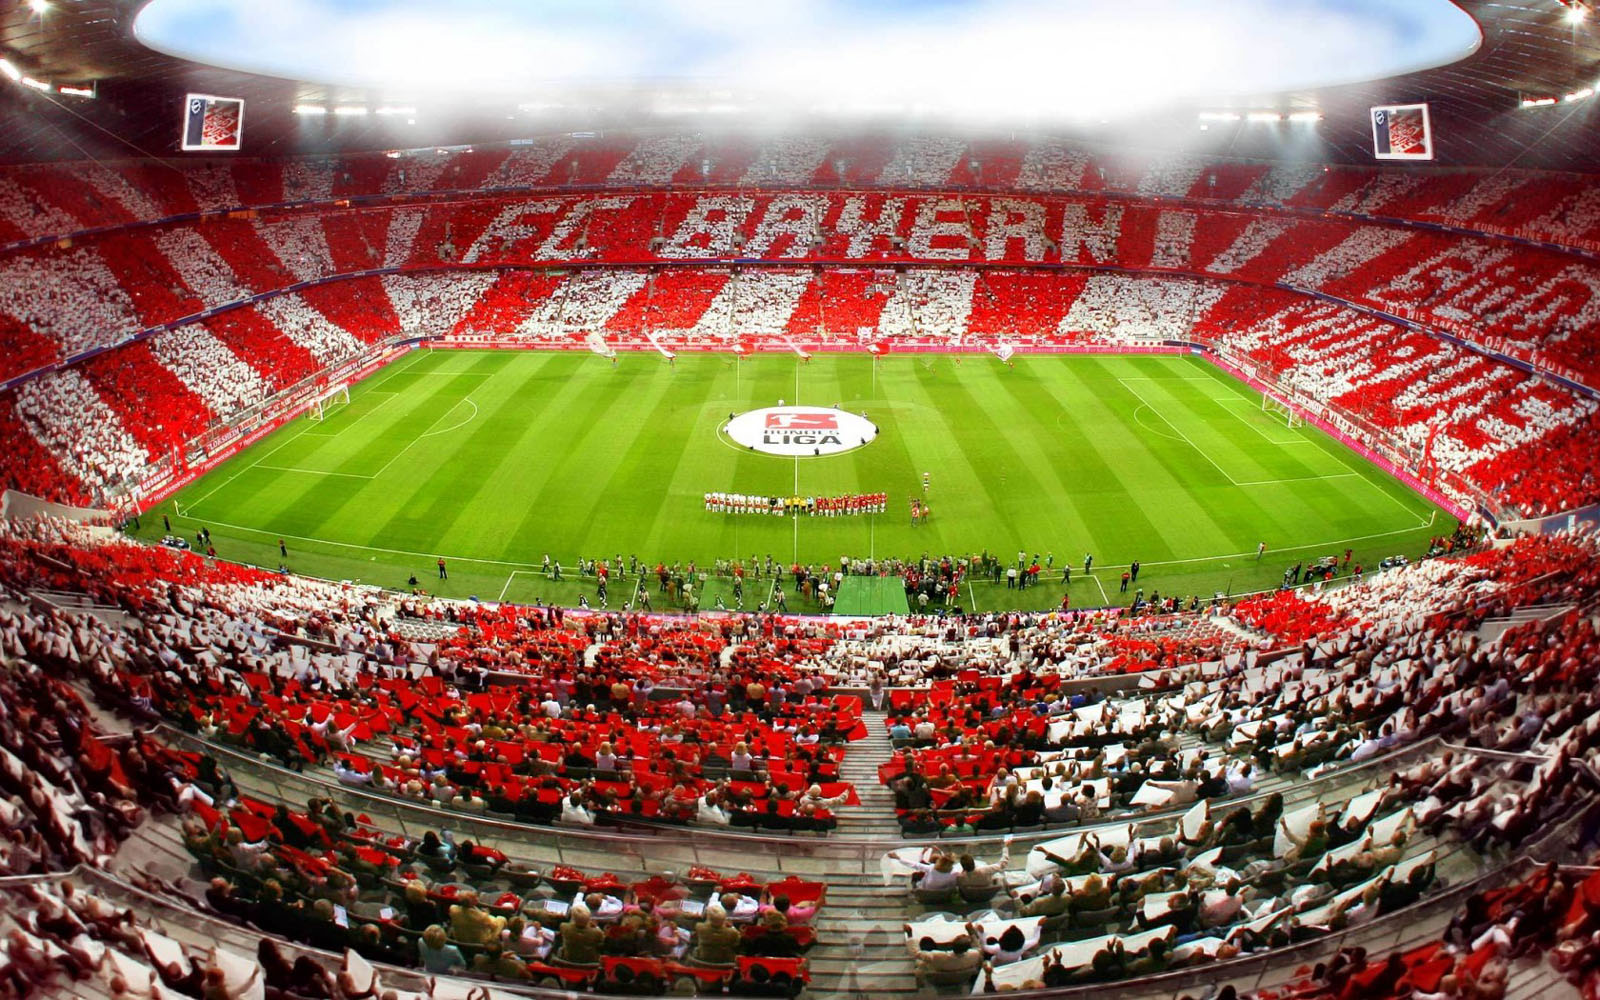 http://3.bp.blogspot.com/-Bm_RowKpGQ8/UVIHDpC7BnI/AAAAAAAAK5s/SEZ2oUckw4E/s1600/Bayern_Munich_Allianz_Arena_2013_Wonderful_Atmosphere_HD_Desktop_Wallpaper_citiesandteams.blogspot.com.jpg